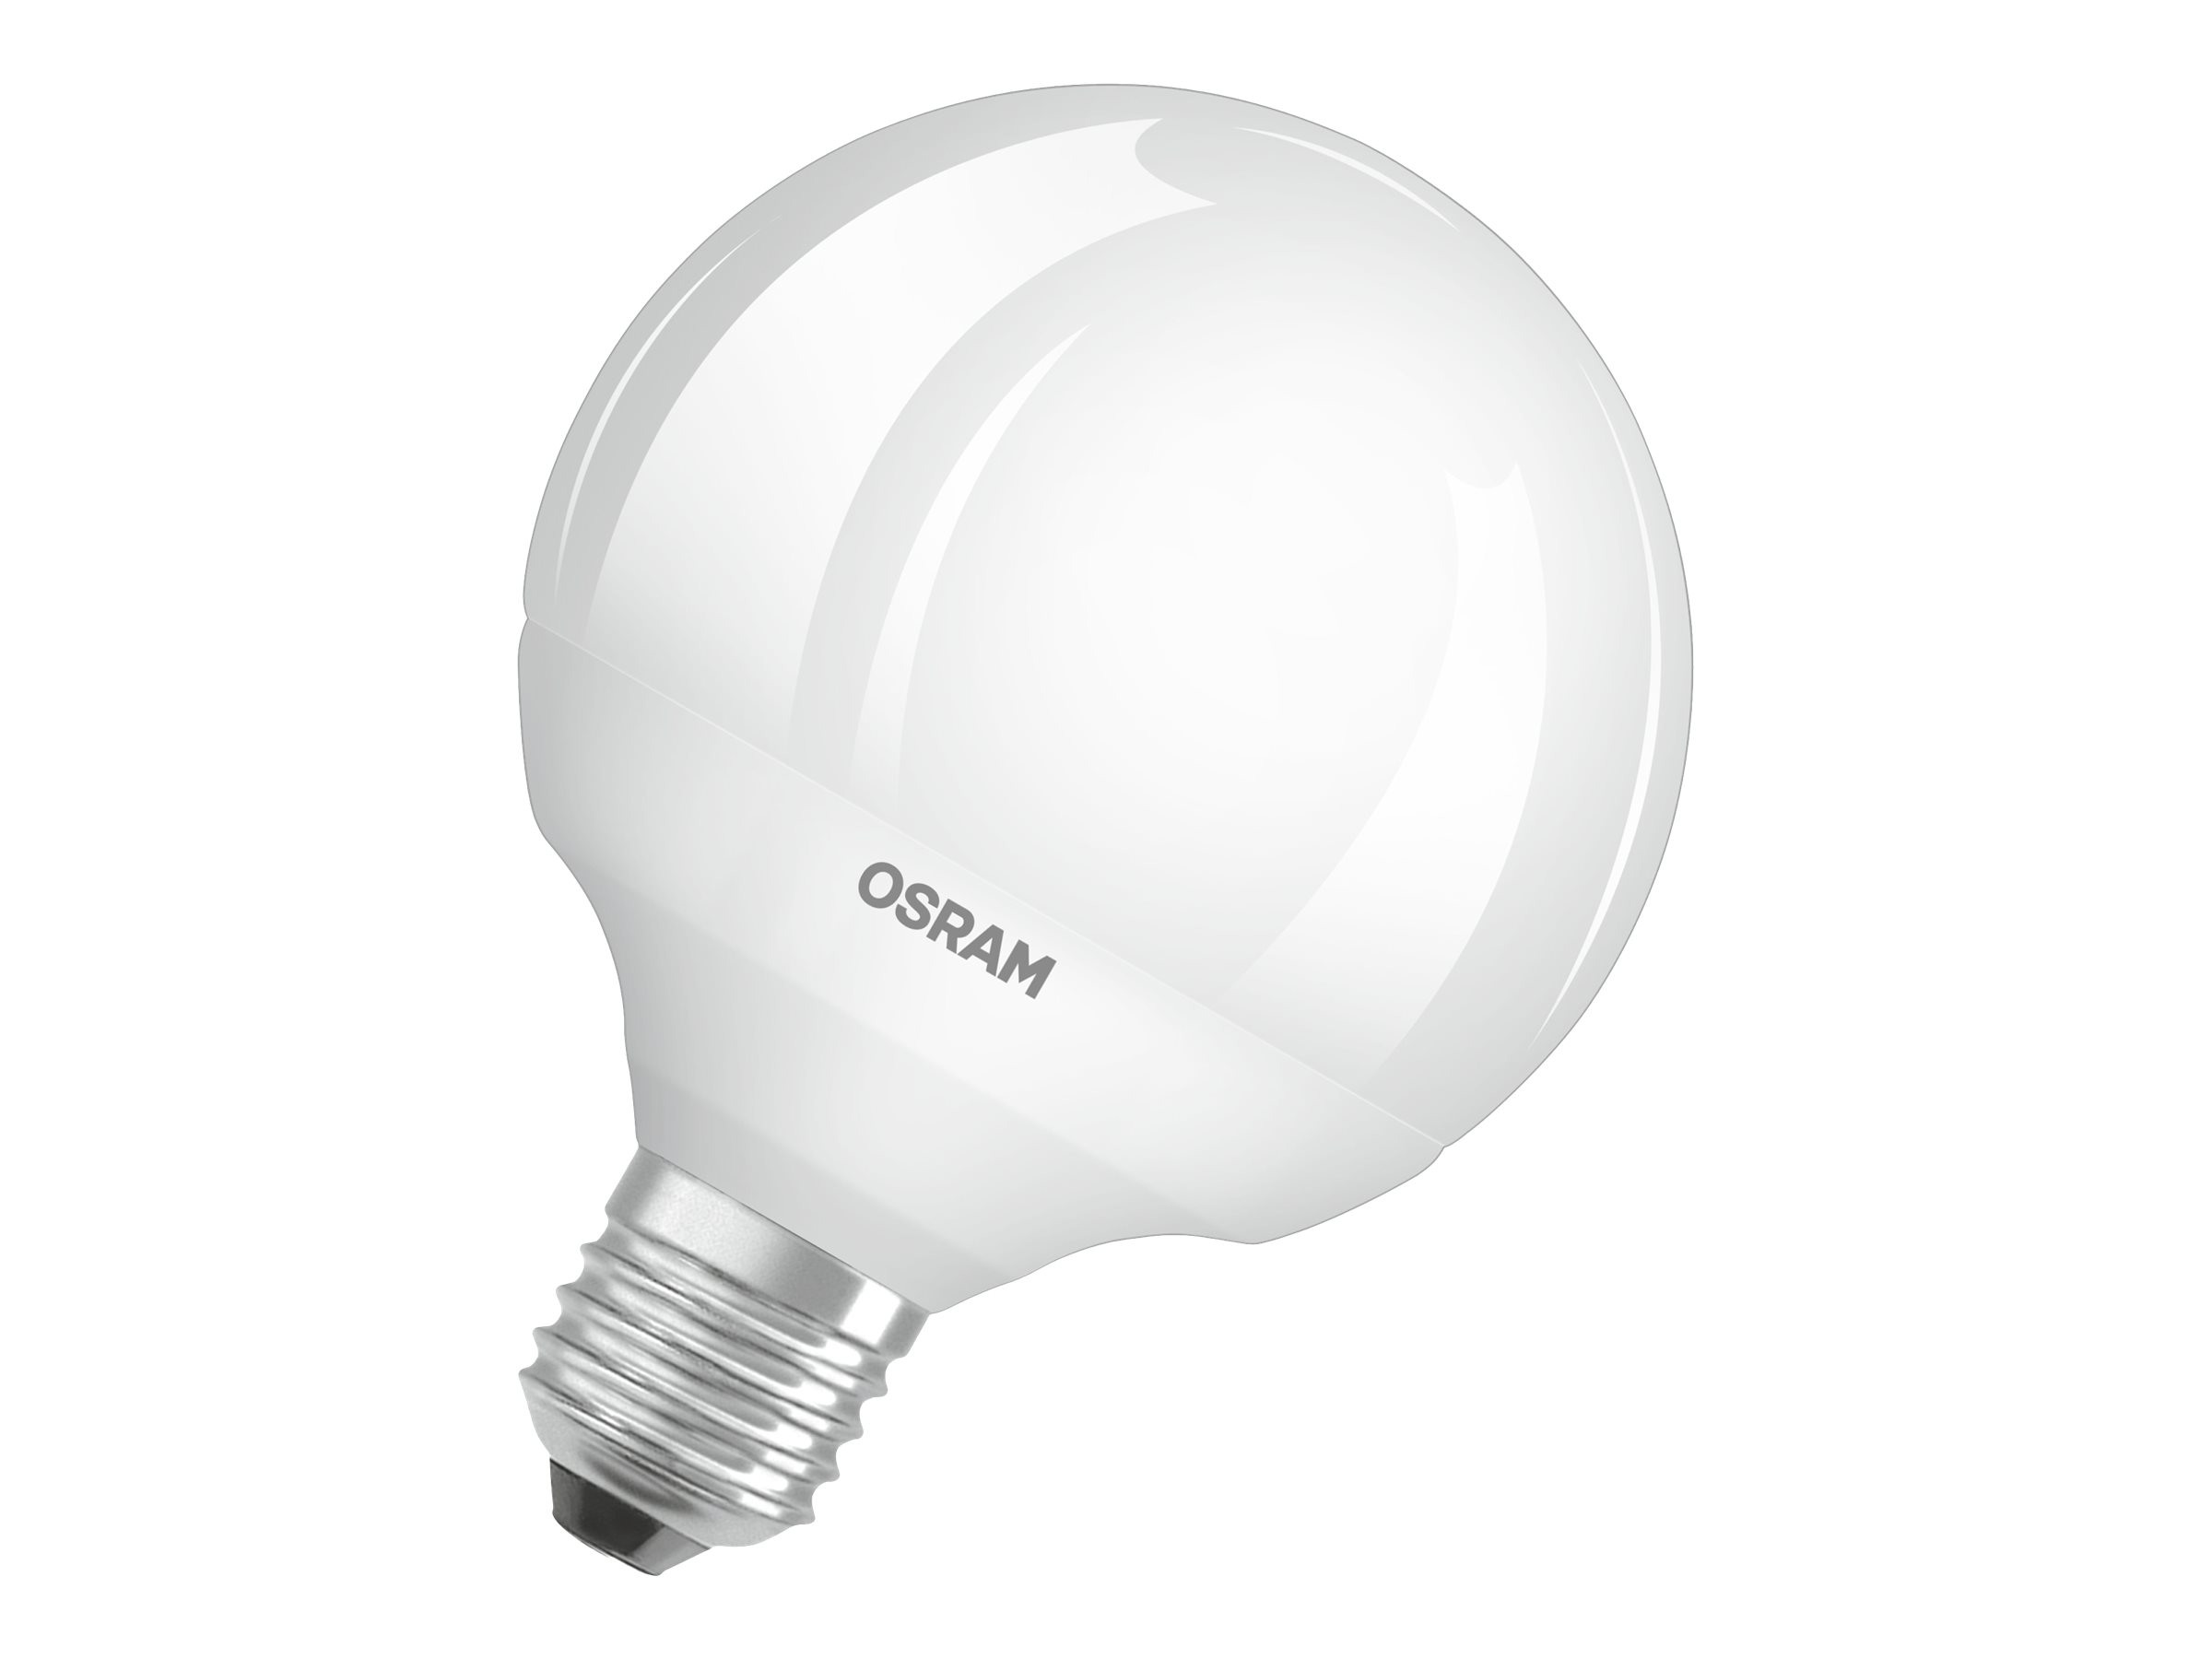 OSRAM PARATHOM advanced CLASSIC GLOBE - LED-Glühlampe - Form: G95 - matt Finish - E27 - 12 W (Entsprechung 75 W)